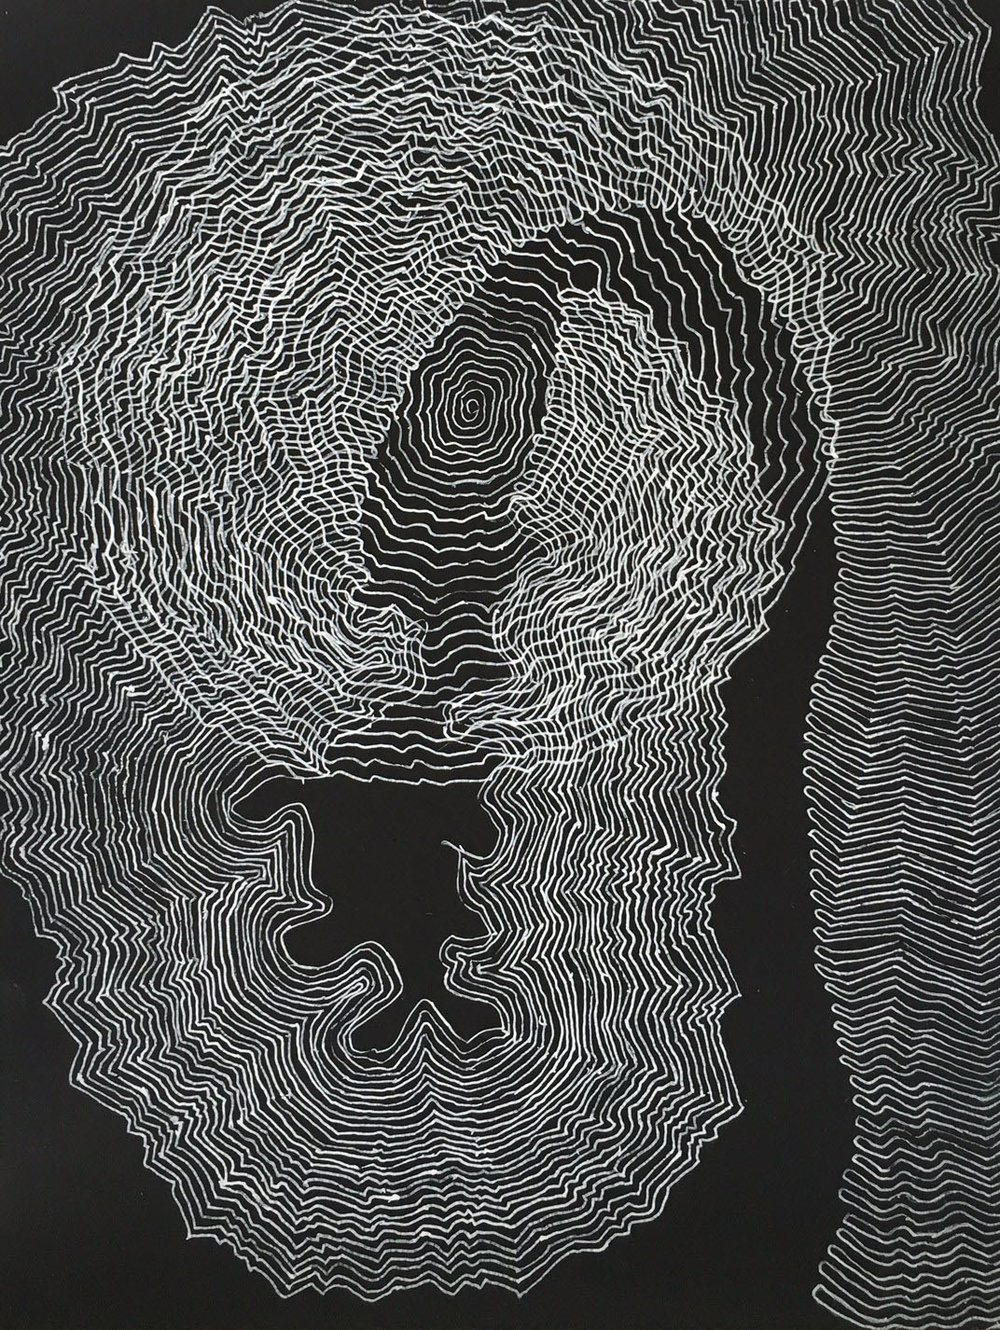 Nightlines 2   12 x 9 inches  Ink on black cardboard   2015